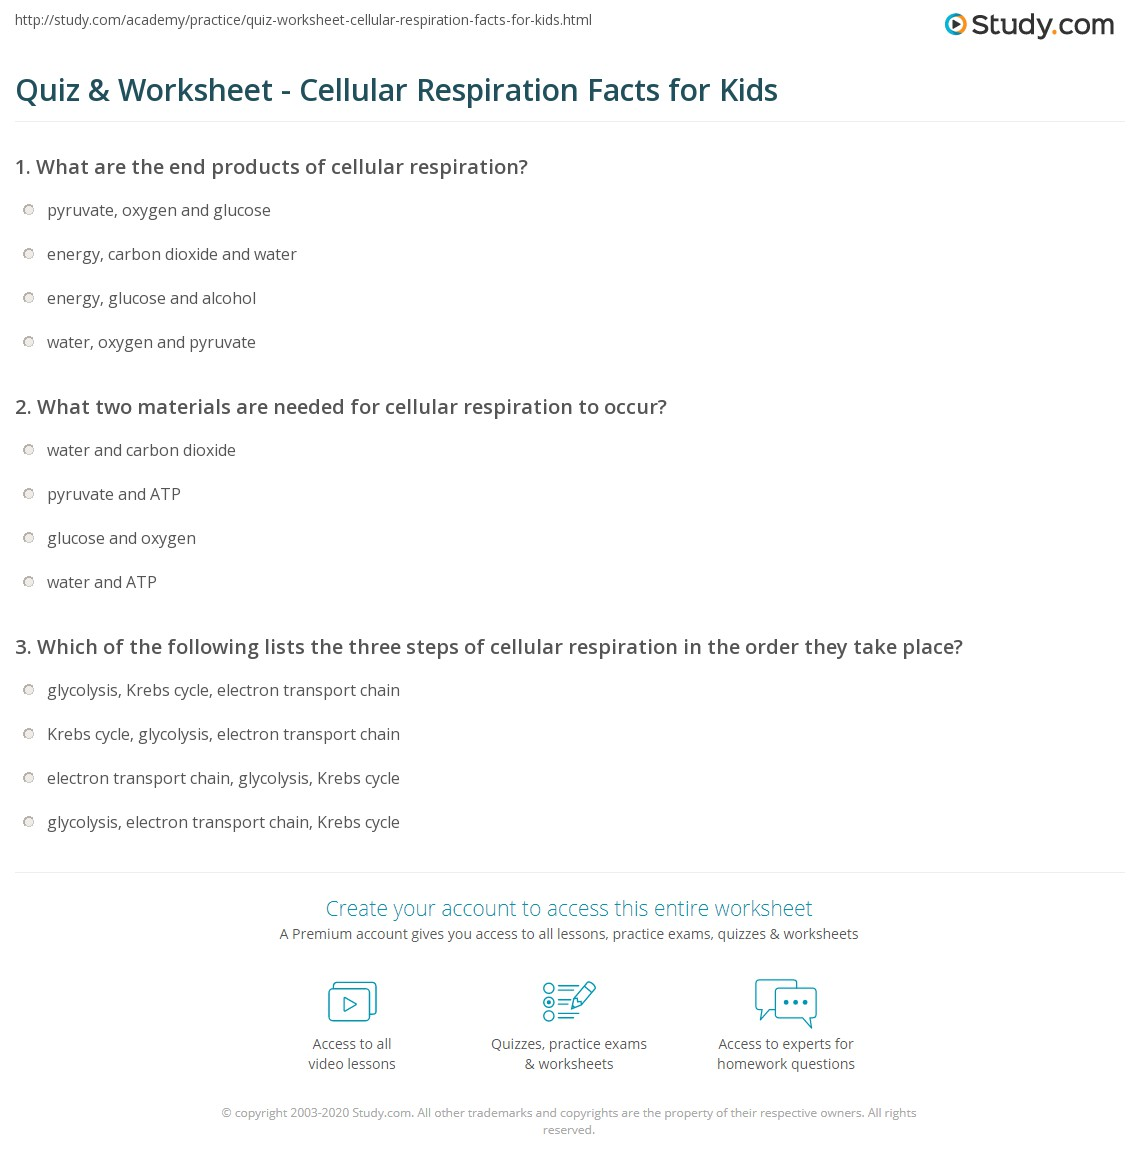 worksheet Cellular Respiration Diagram Worksheet quiz worksheet cellular respiration facts for kids study com print lesson definition steps worksheet